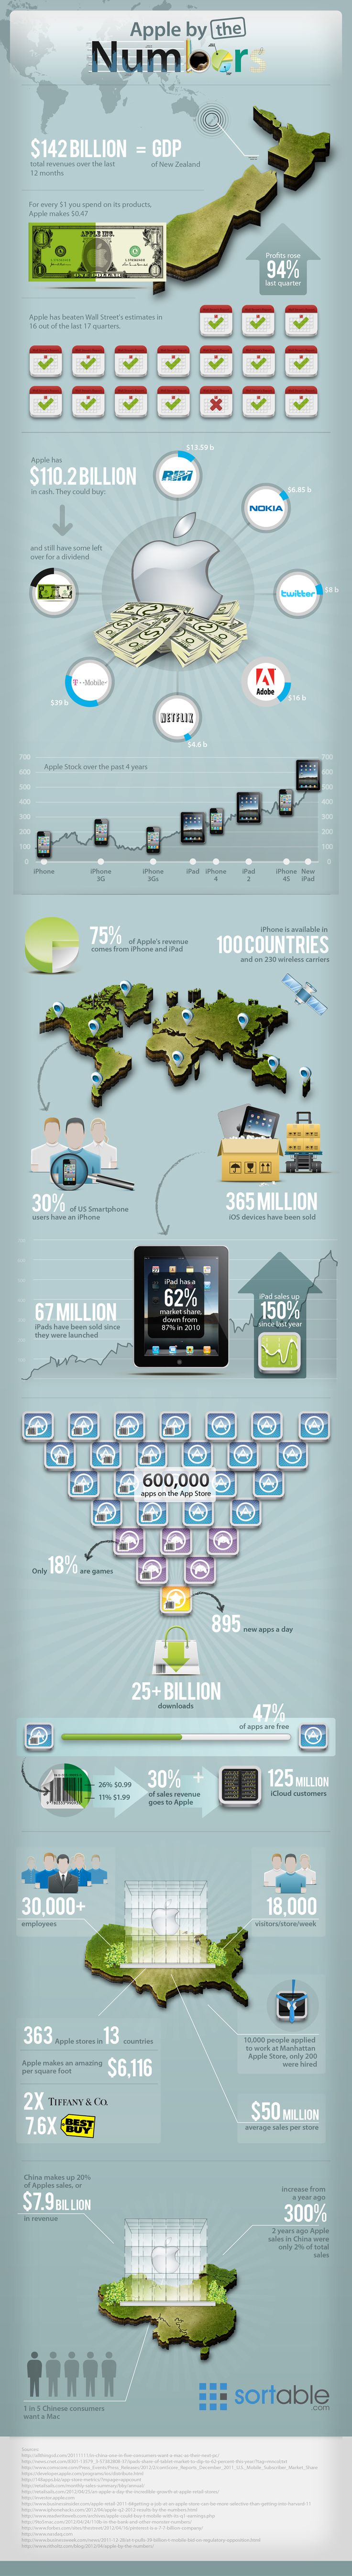 Apple by Numbers